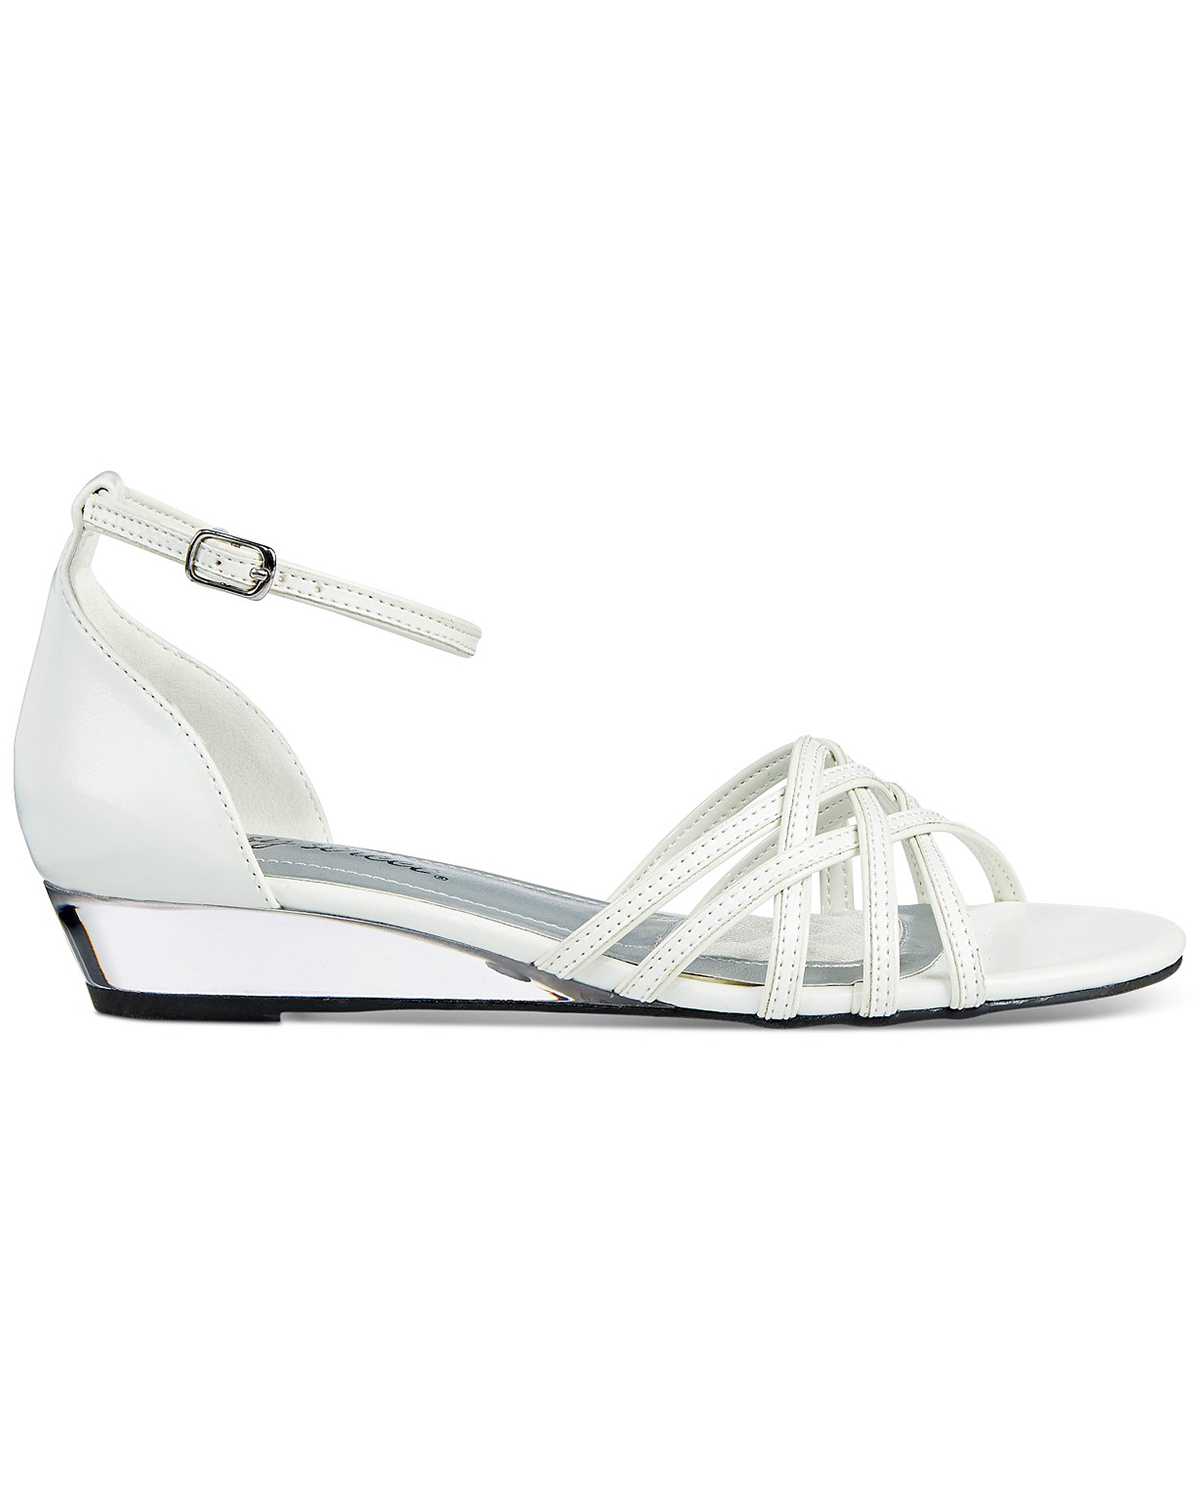 wedding wedges with white woven strap front